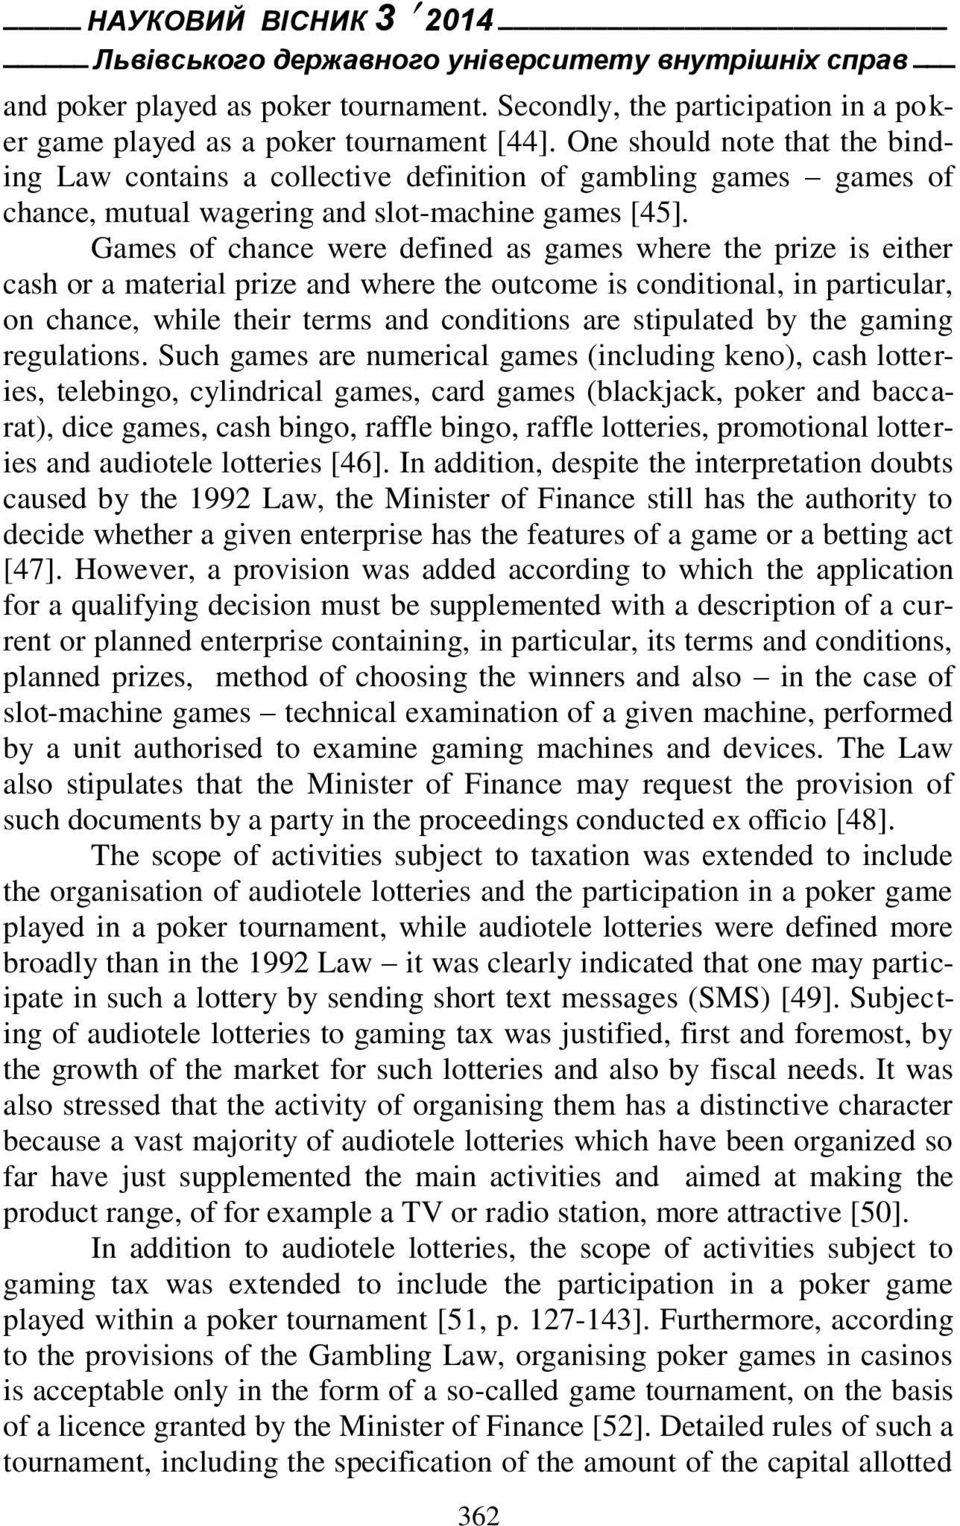 Games of chance were defined as games where the prize is either cash or a material prize and where the outcome is conditional, in particular, on chance, while their terms and conditions are